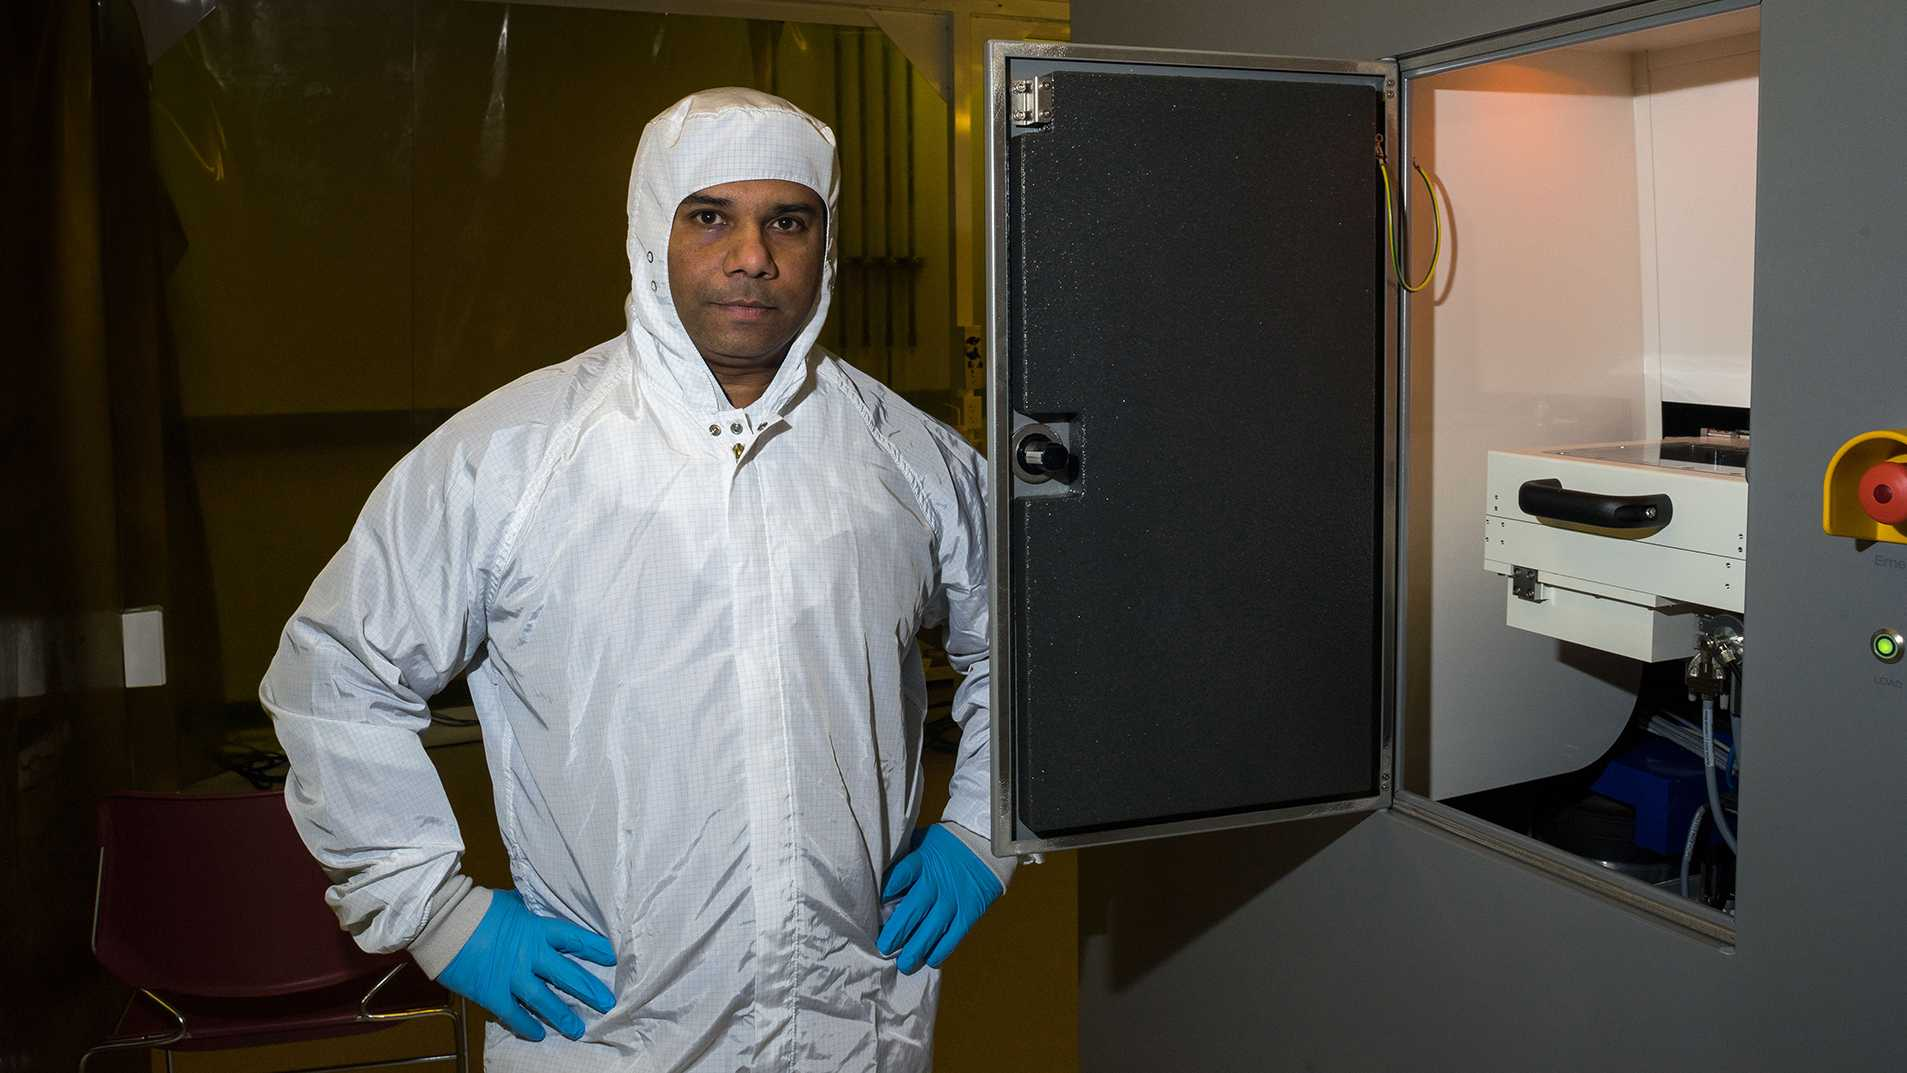 Dr. Aju Jugessur stands in front of one of the machines used in his lab at the Iowa Advanced Technology Laboratory on Tuesday, Jan. 23, 2018. Dr. Jugessur is the director of the University of Iowa Microfabrication Facility.